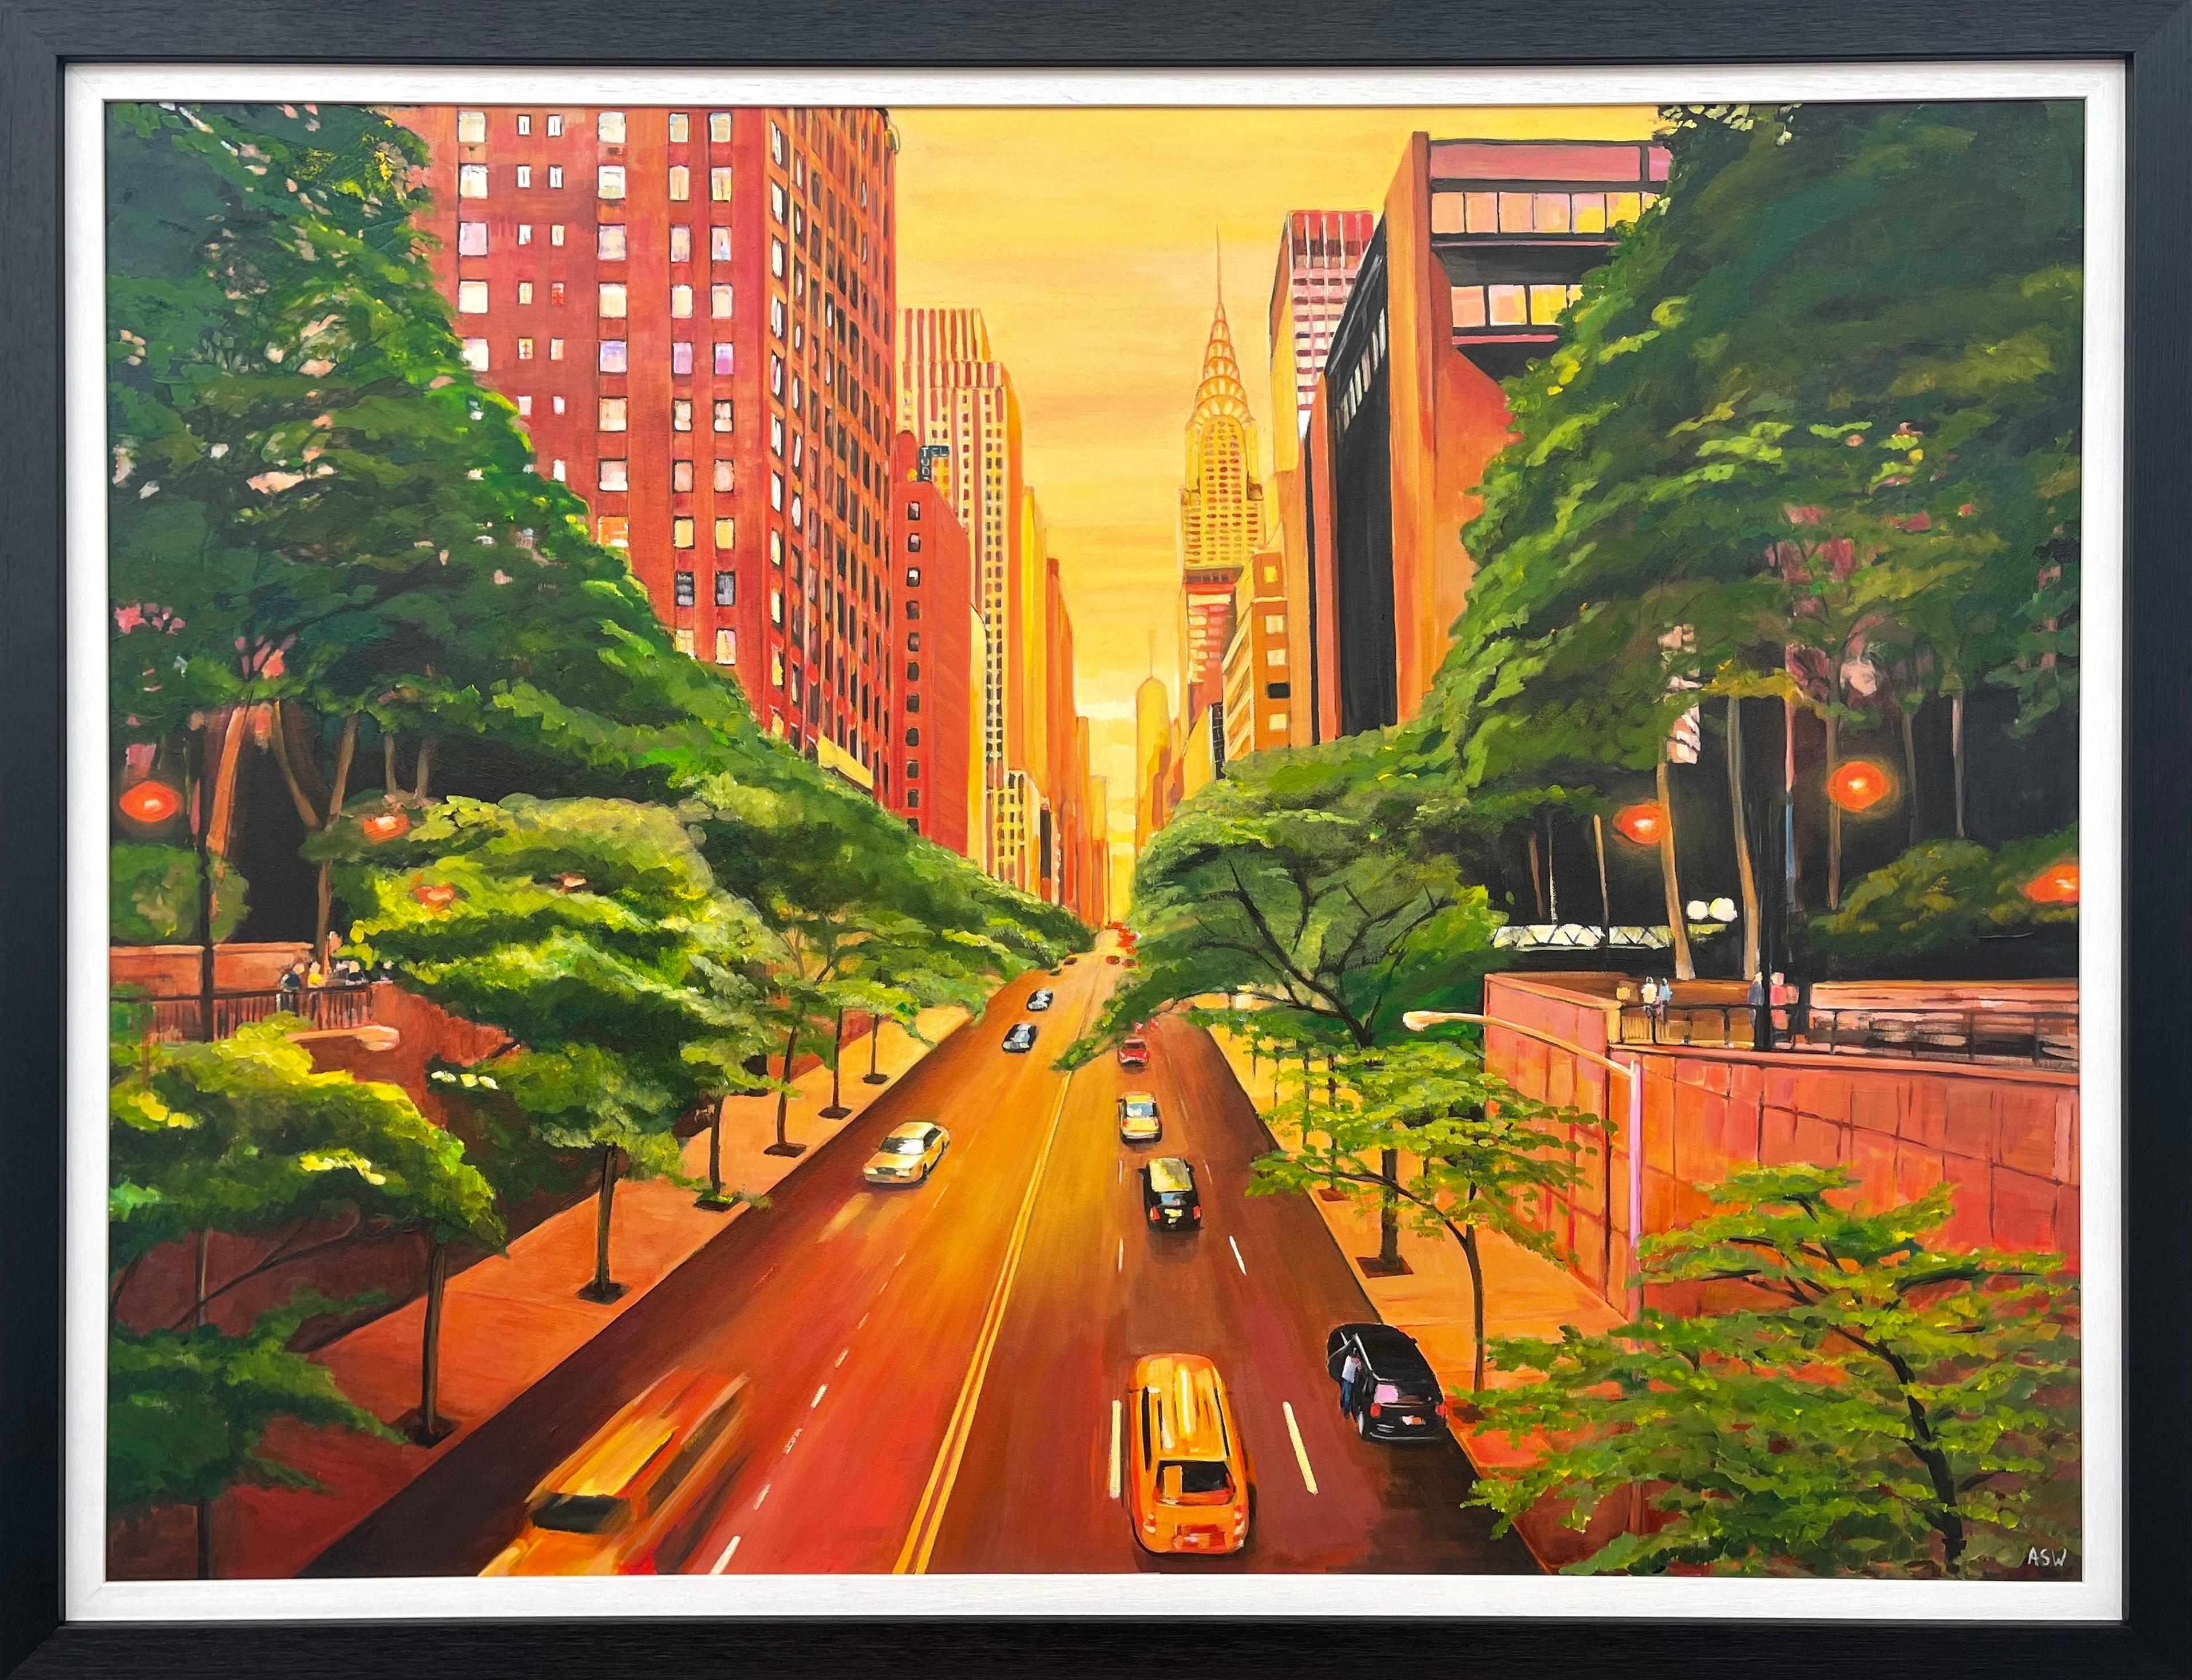 The Chrysler Building 42nd Street New York City by Contemporary British Artist